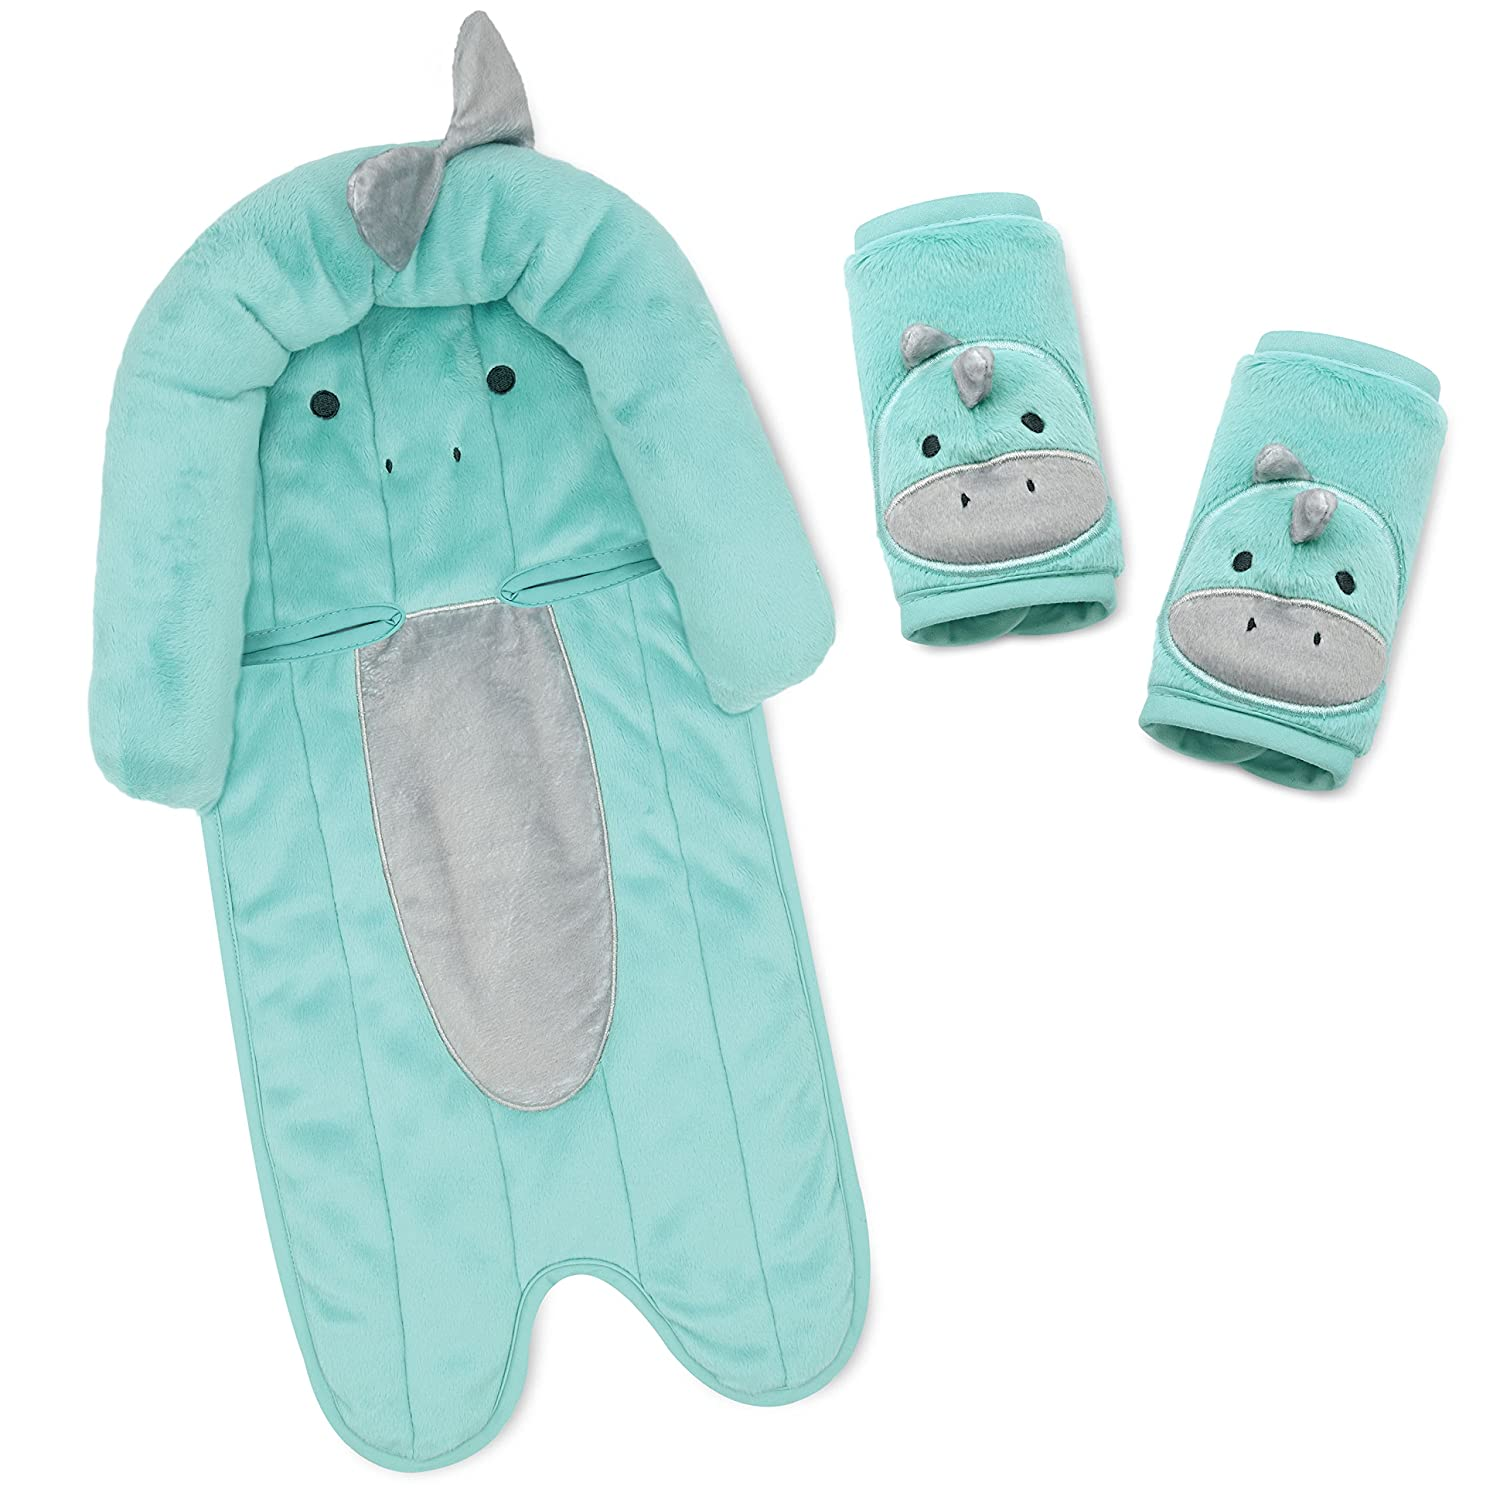 infant headsupport and matching strap covers aqua minky all